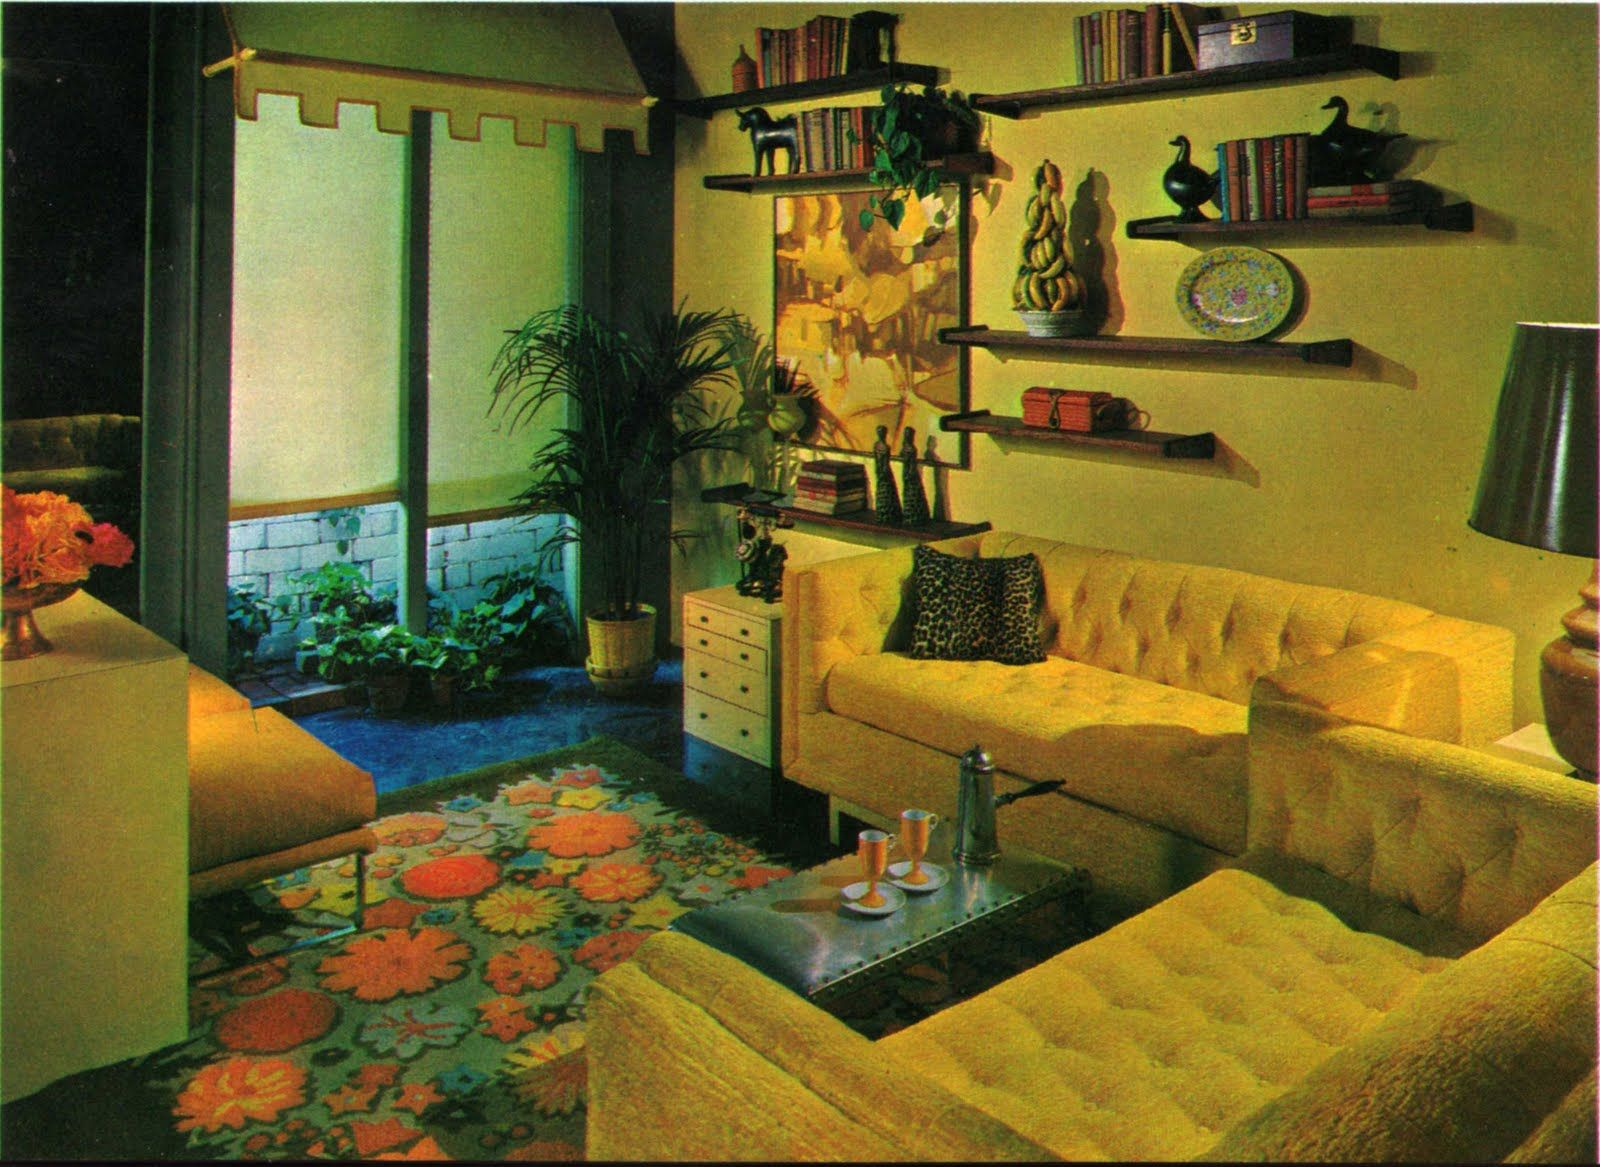 Papergreat some interior decorating tips from 1969 for Some interior design ideas